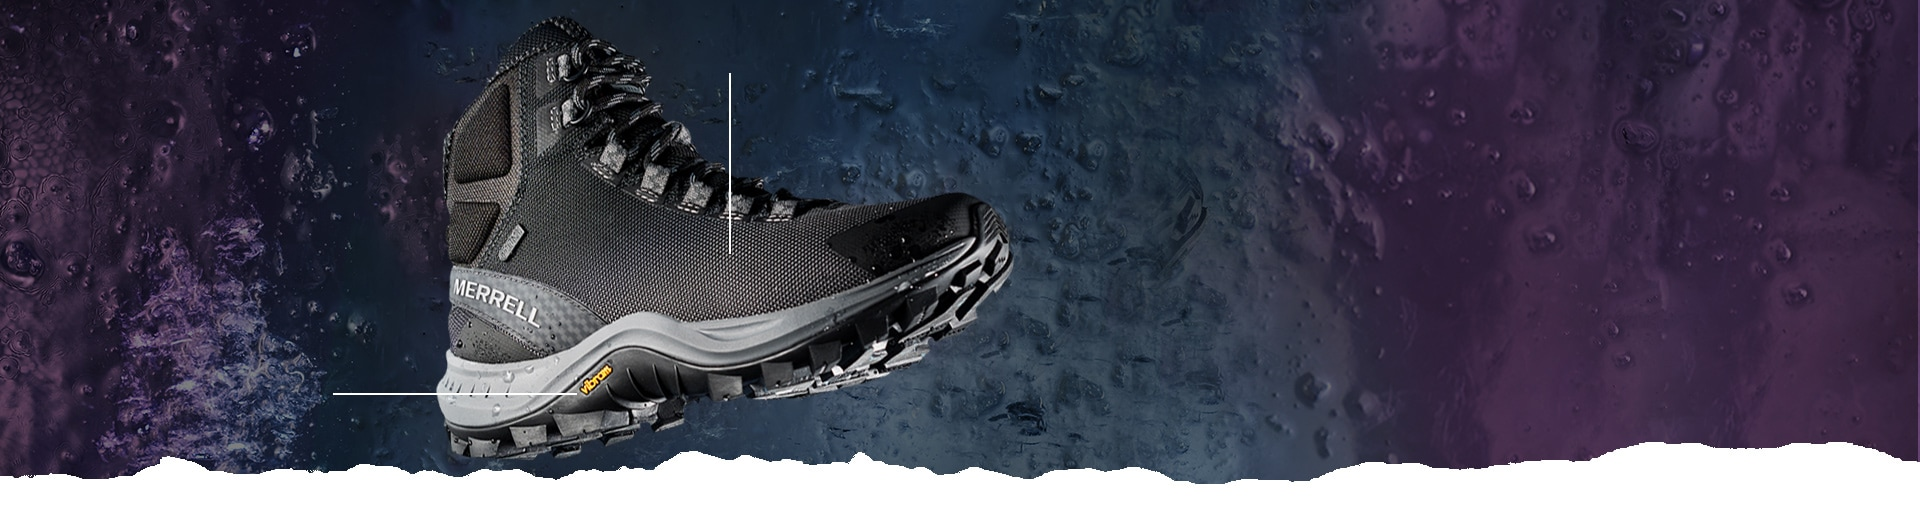 Merrell Thermo Cross boot over a blue and purple moon-like surface.